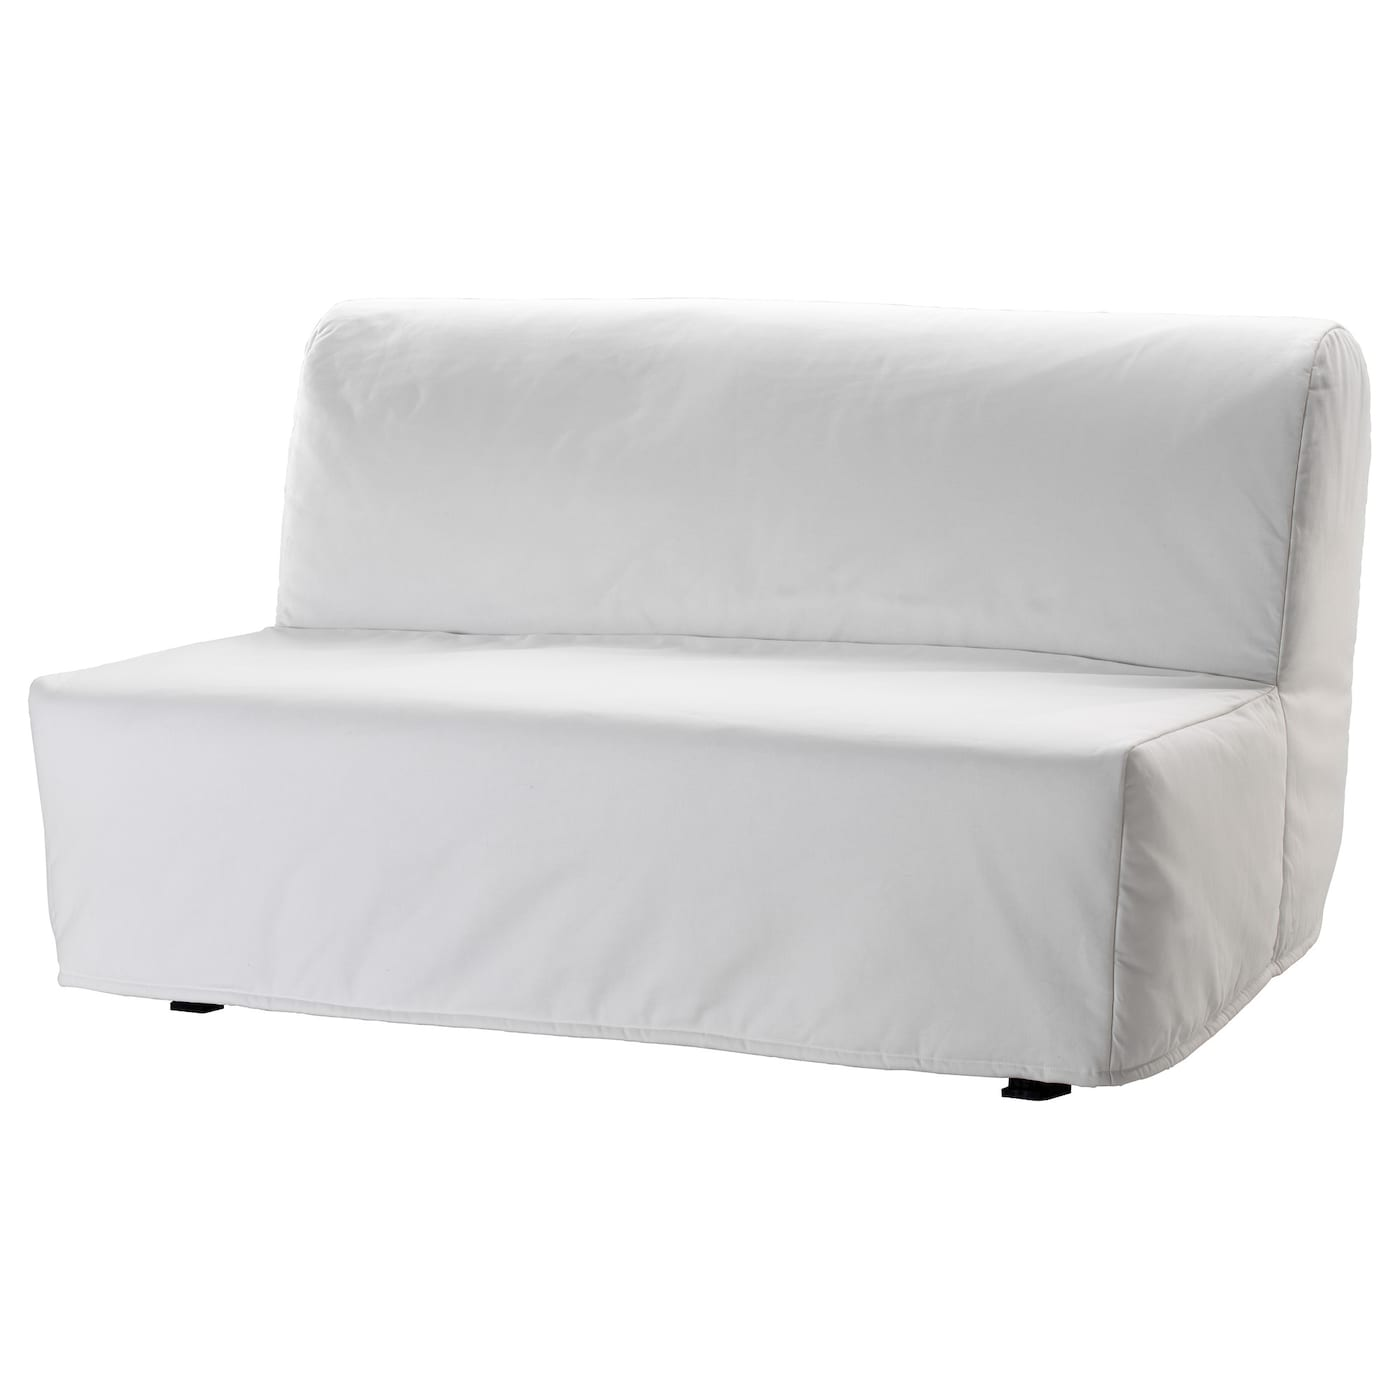 IKEA LYCKSELE LÖVÅS two-seat sofa-bed Readily converts into a bed big enough for two.